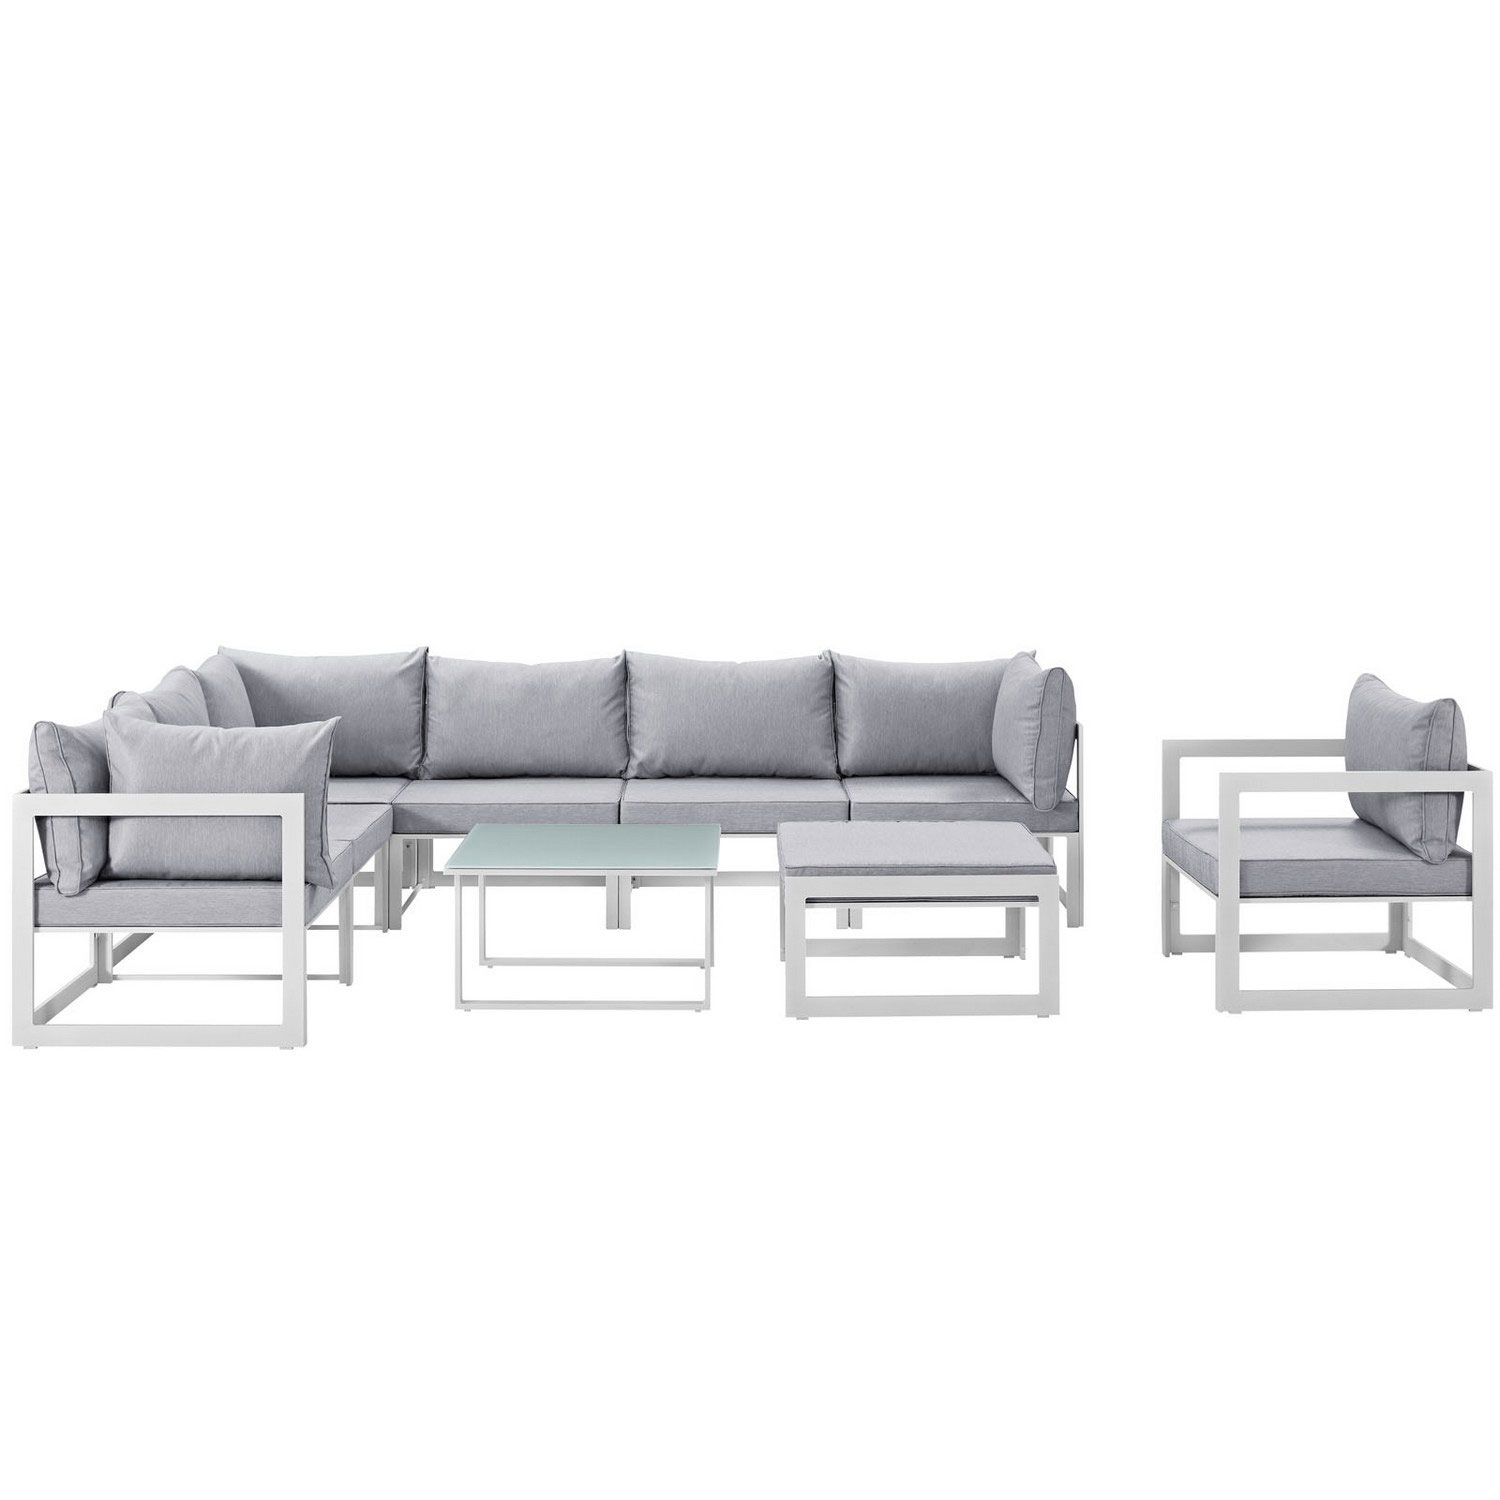 Modway Fortuna 9 Piece Outdoor Patio Sectional Sofa Set - White/Gray